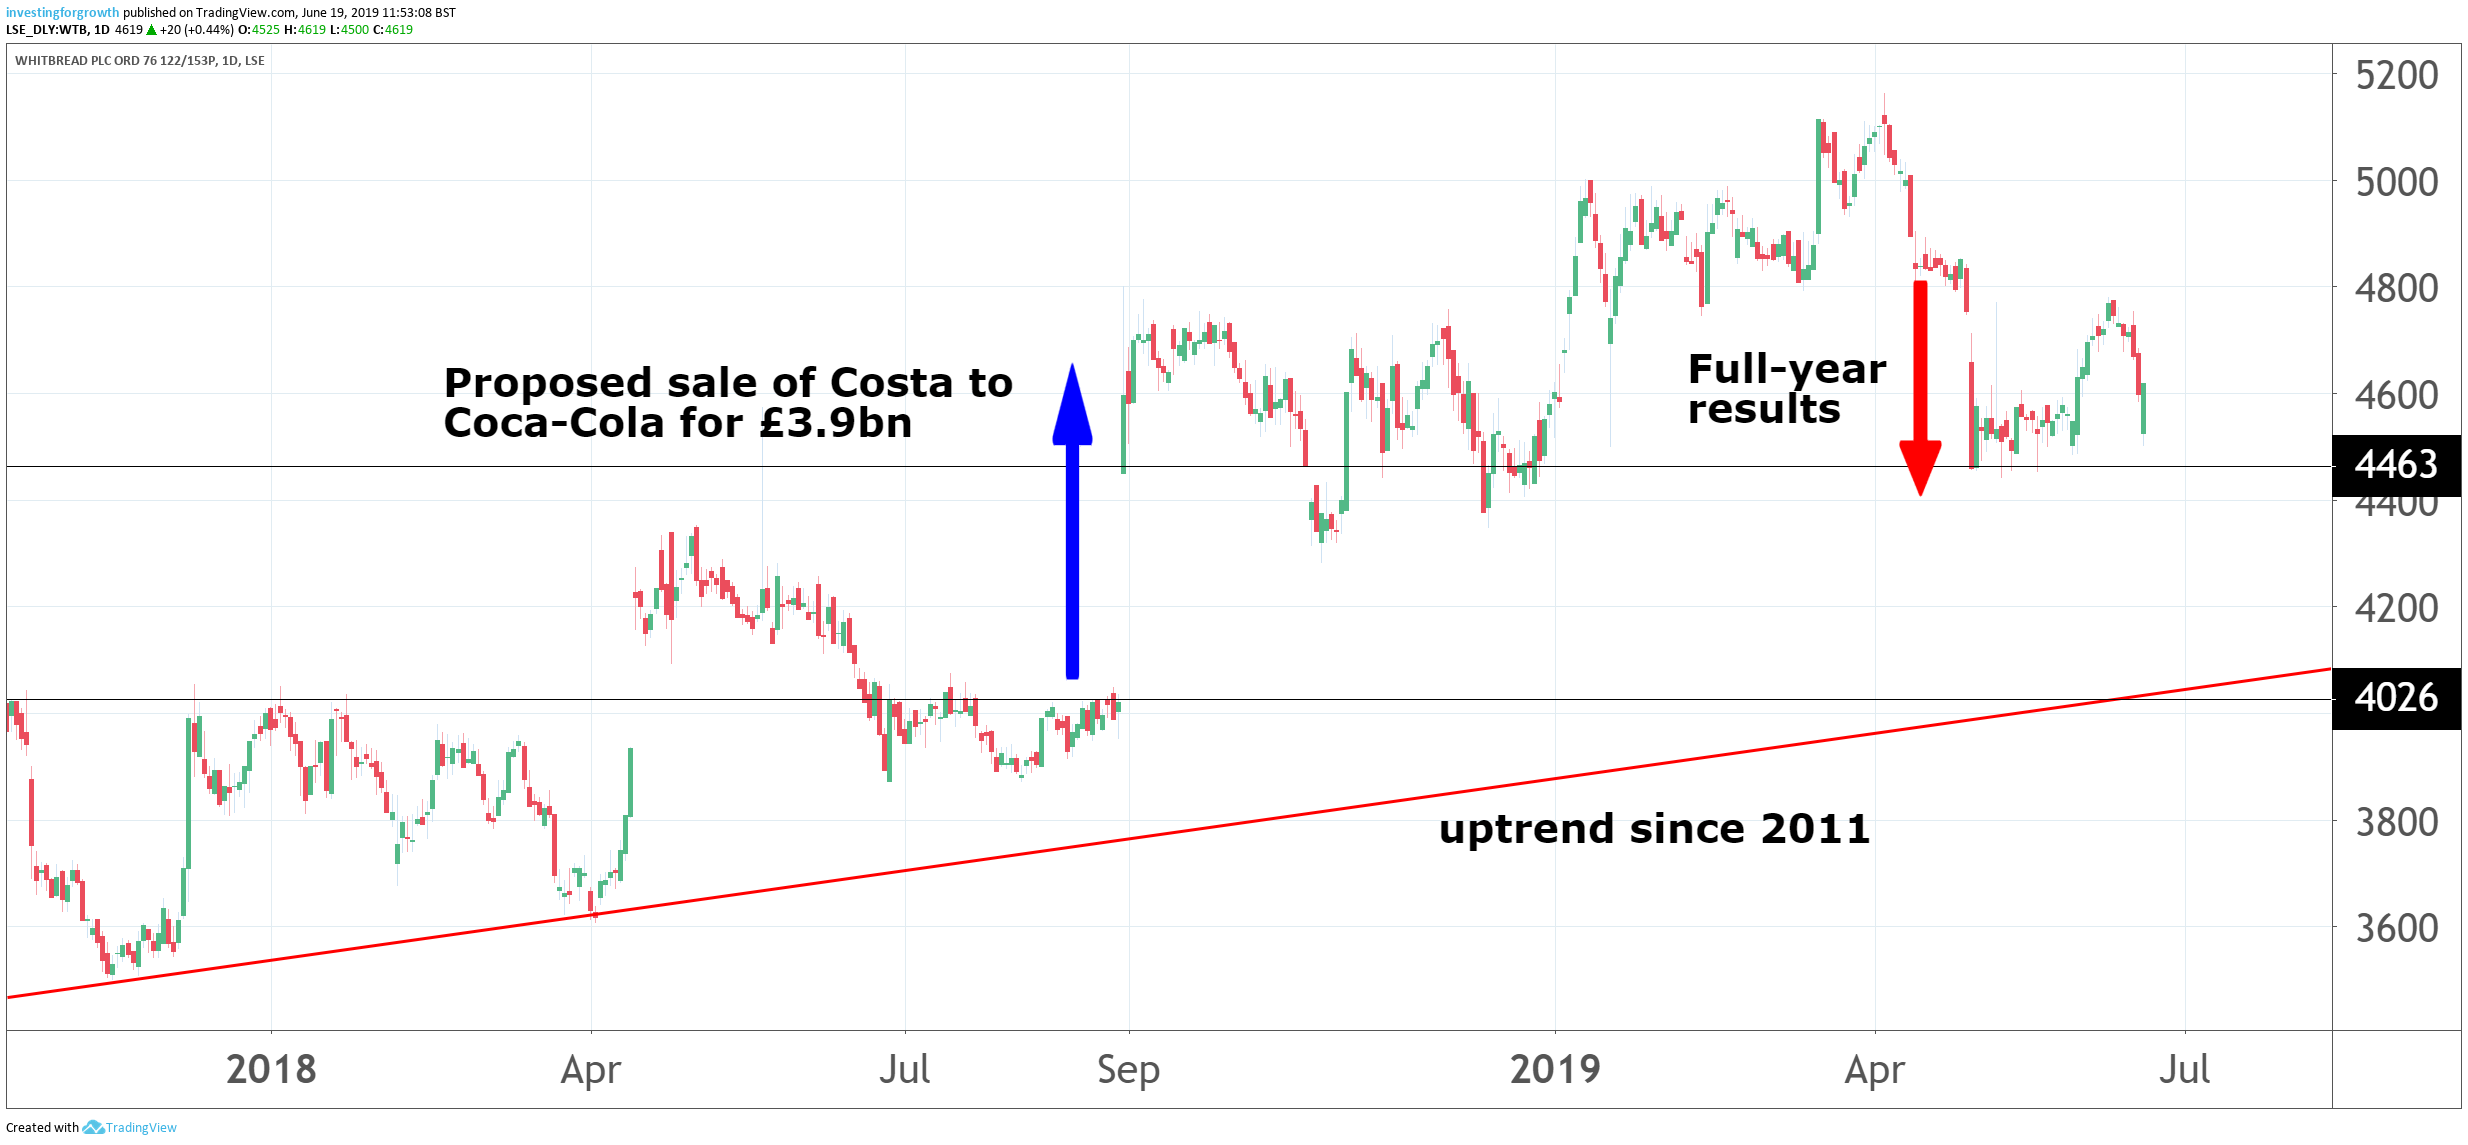 Whitbread shares: Waiting for strategy to bear fruit - Analysis